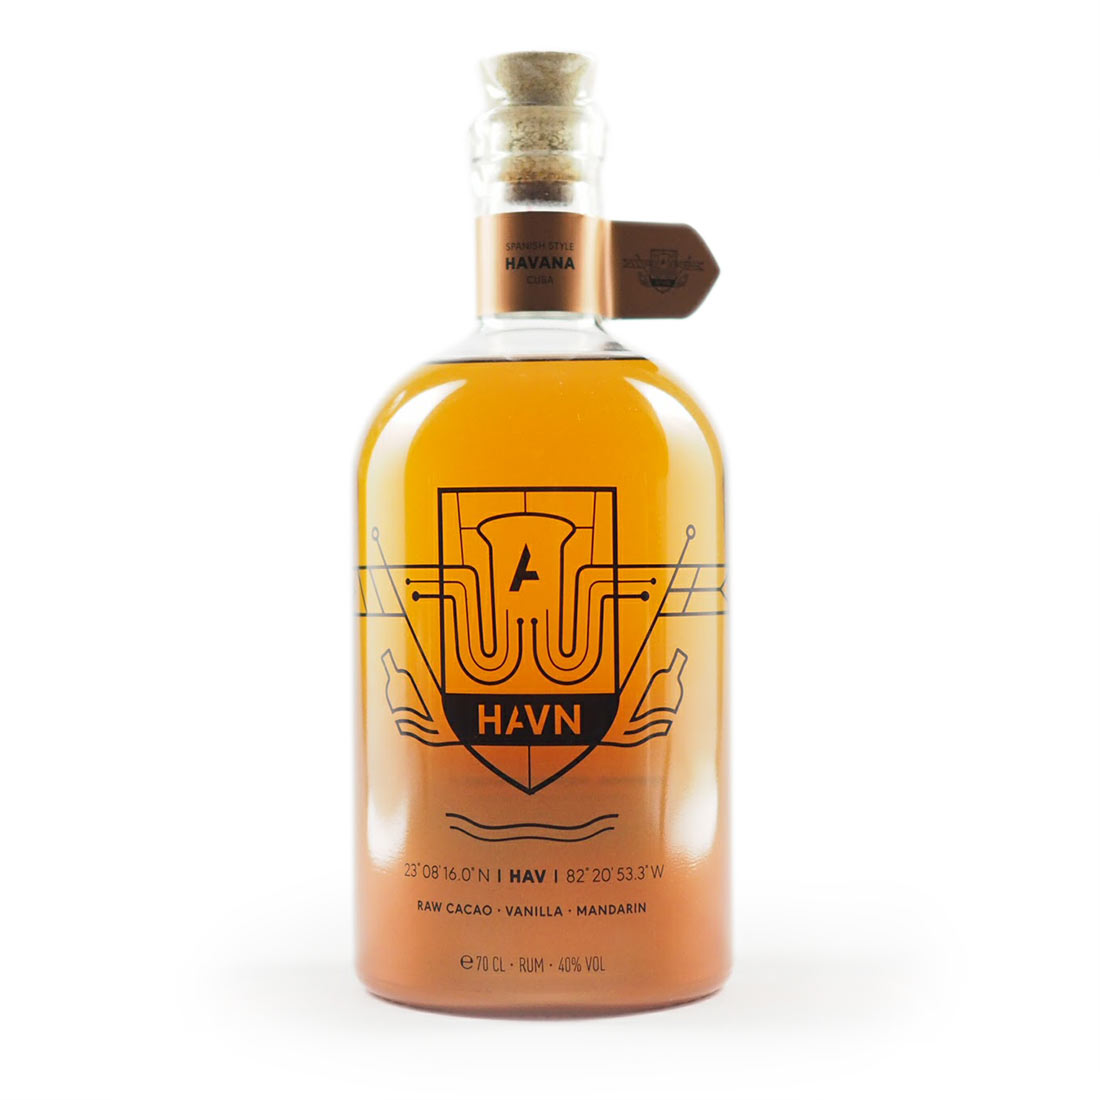 havn-rum-havana_front-luxury-for-men